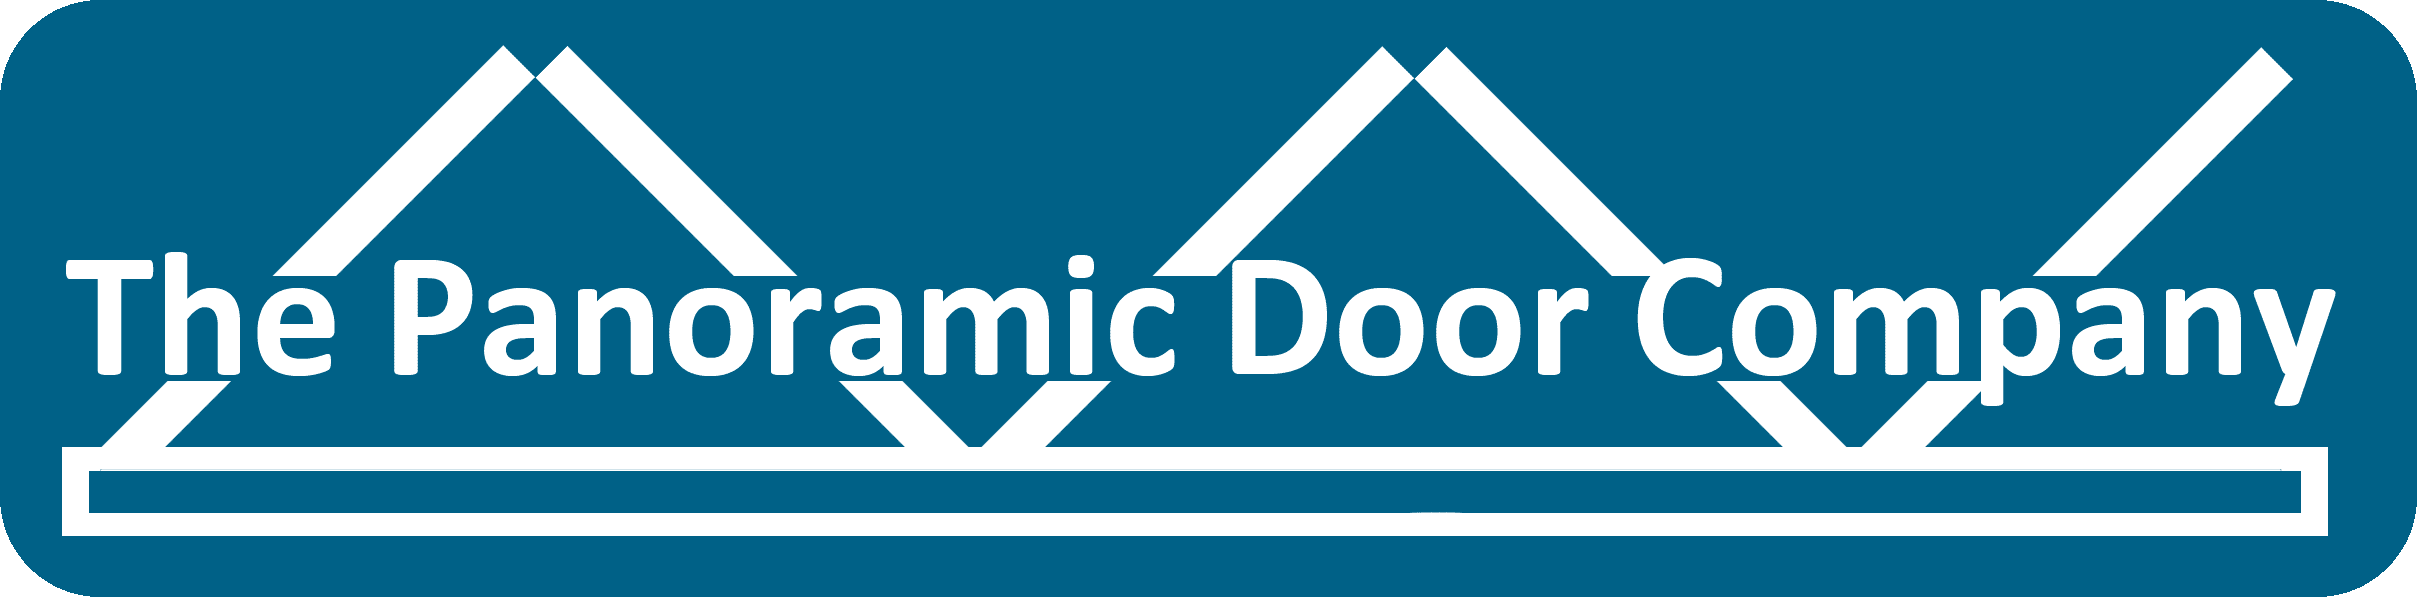 The Panoramic Door Company